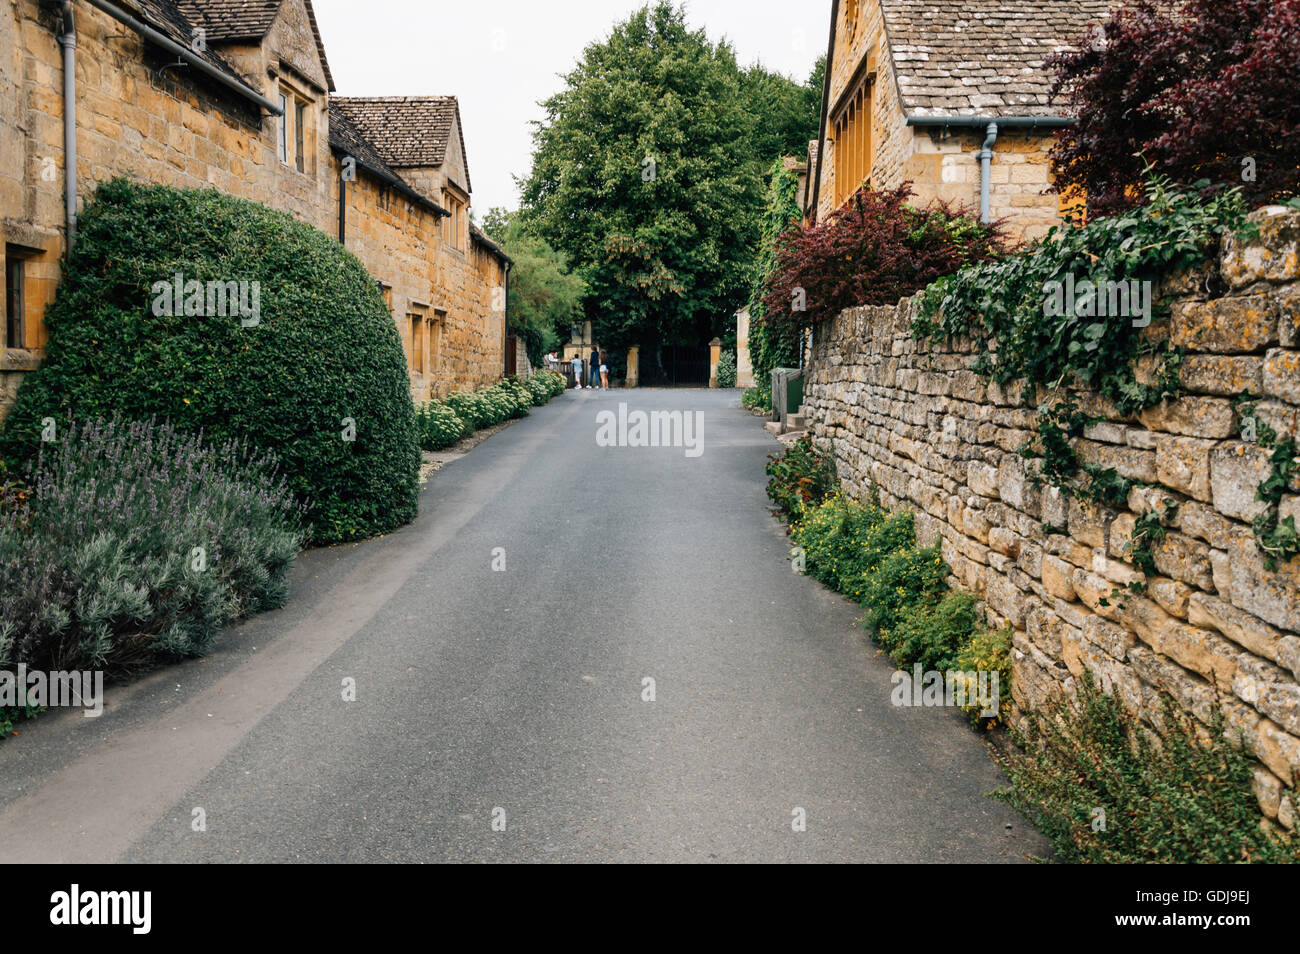 Typical street in the center of the village. Stanton is one of the prettiest and idyllic villages - Stock Image